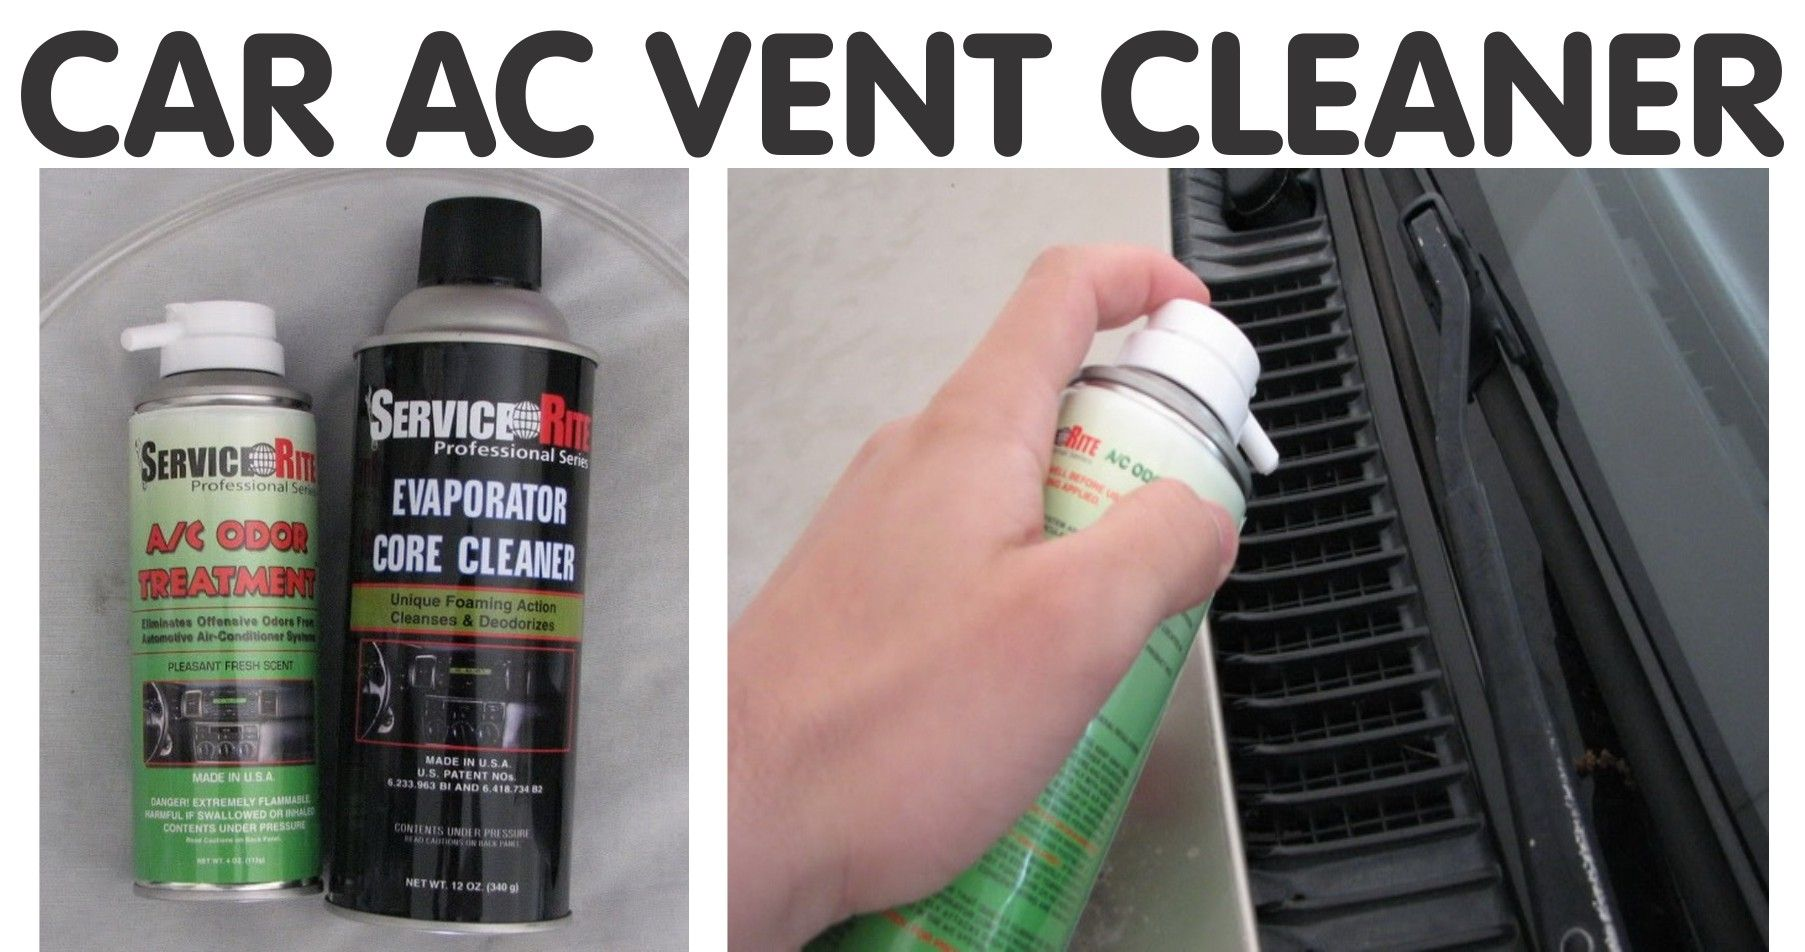 Use A Cleaning Product That Contains Enzymes To Clean Car